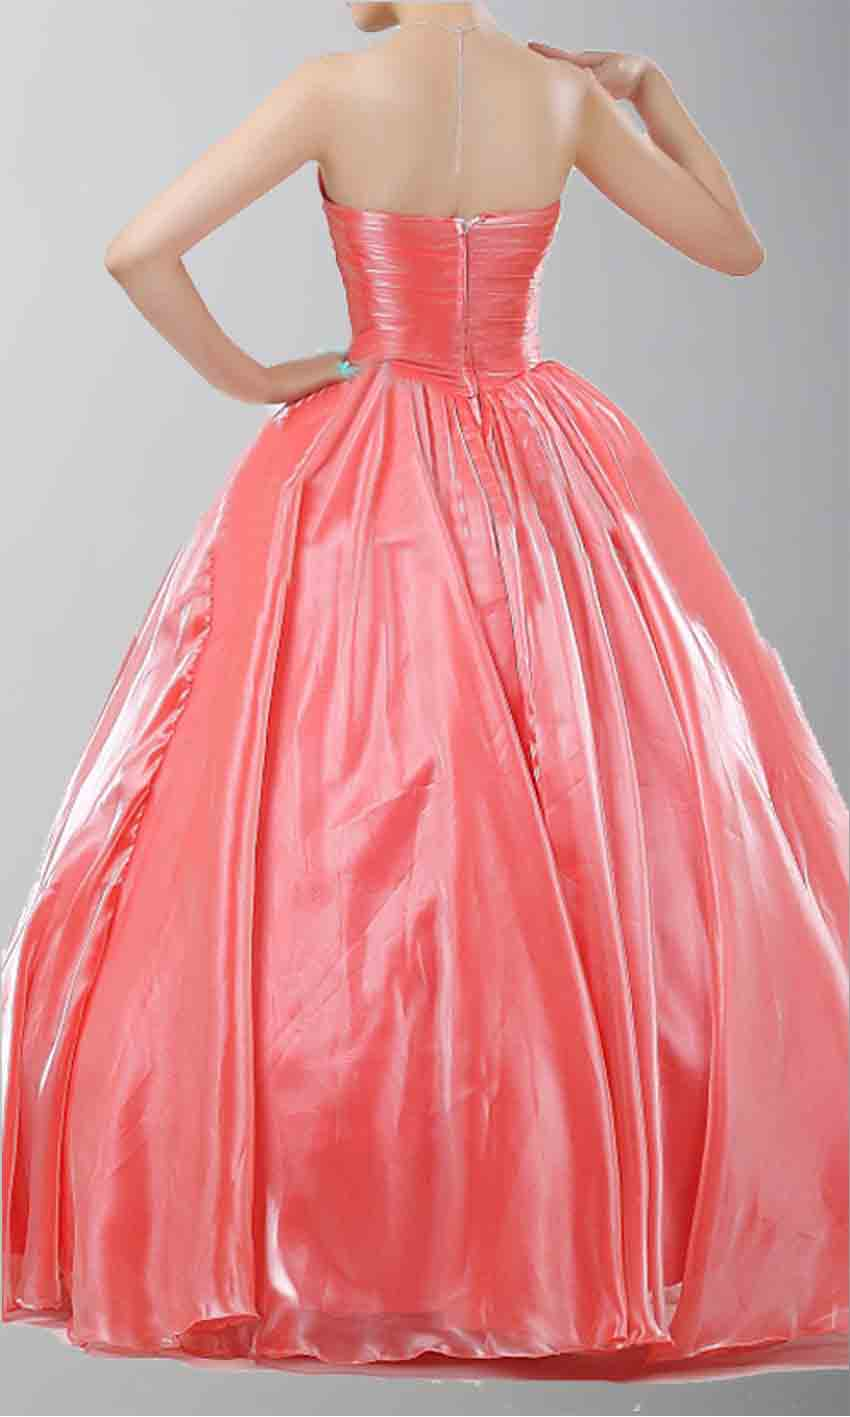 Graceful Strapless Princess Style Prom Dresses KSP118 [KSP118] - £112.00 : Cheap Prom Dresses Uk, Bridesmaid Dresses, 2014 Prom & Evening Dresses, Look for cheap elegant prom dresses 2014, cocktail gowns, or dresses for special occasions? kissprom.co.uk offers various bridesmaid dresses, evening dress, free shipping to UK etc.